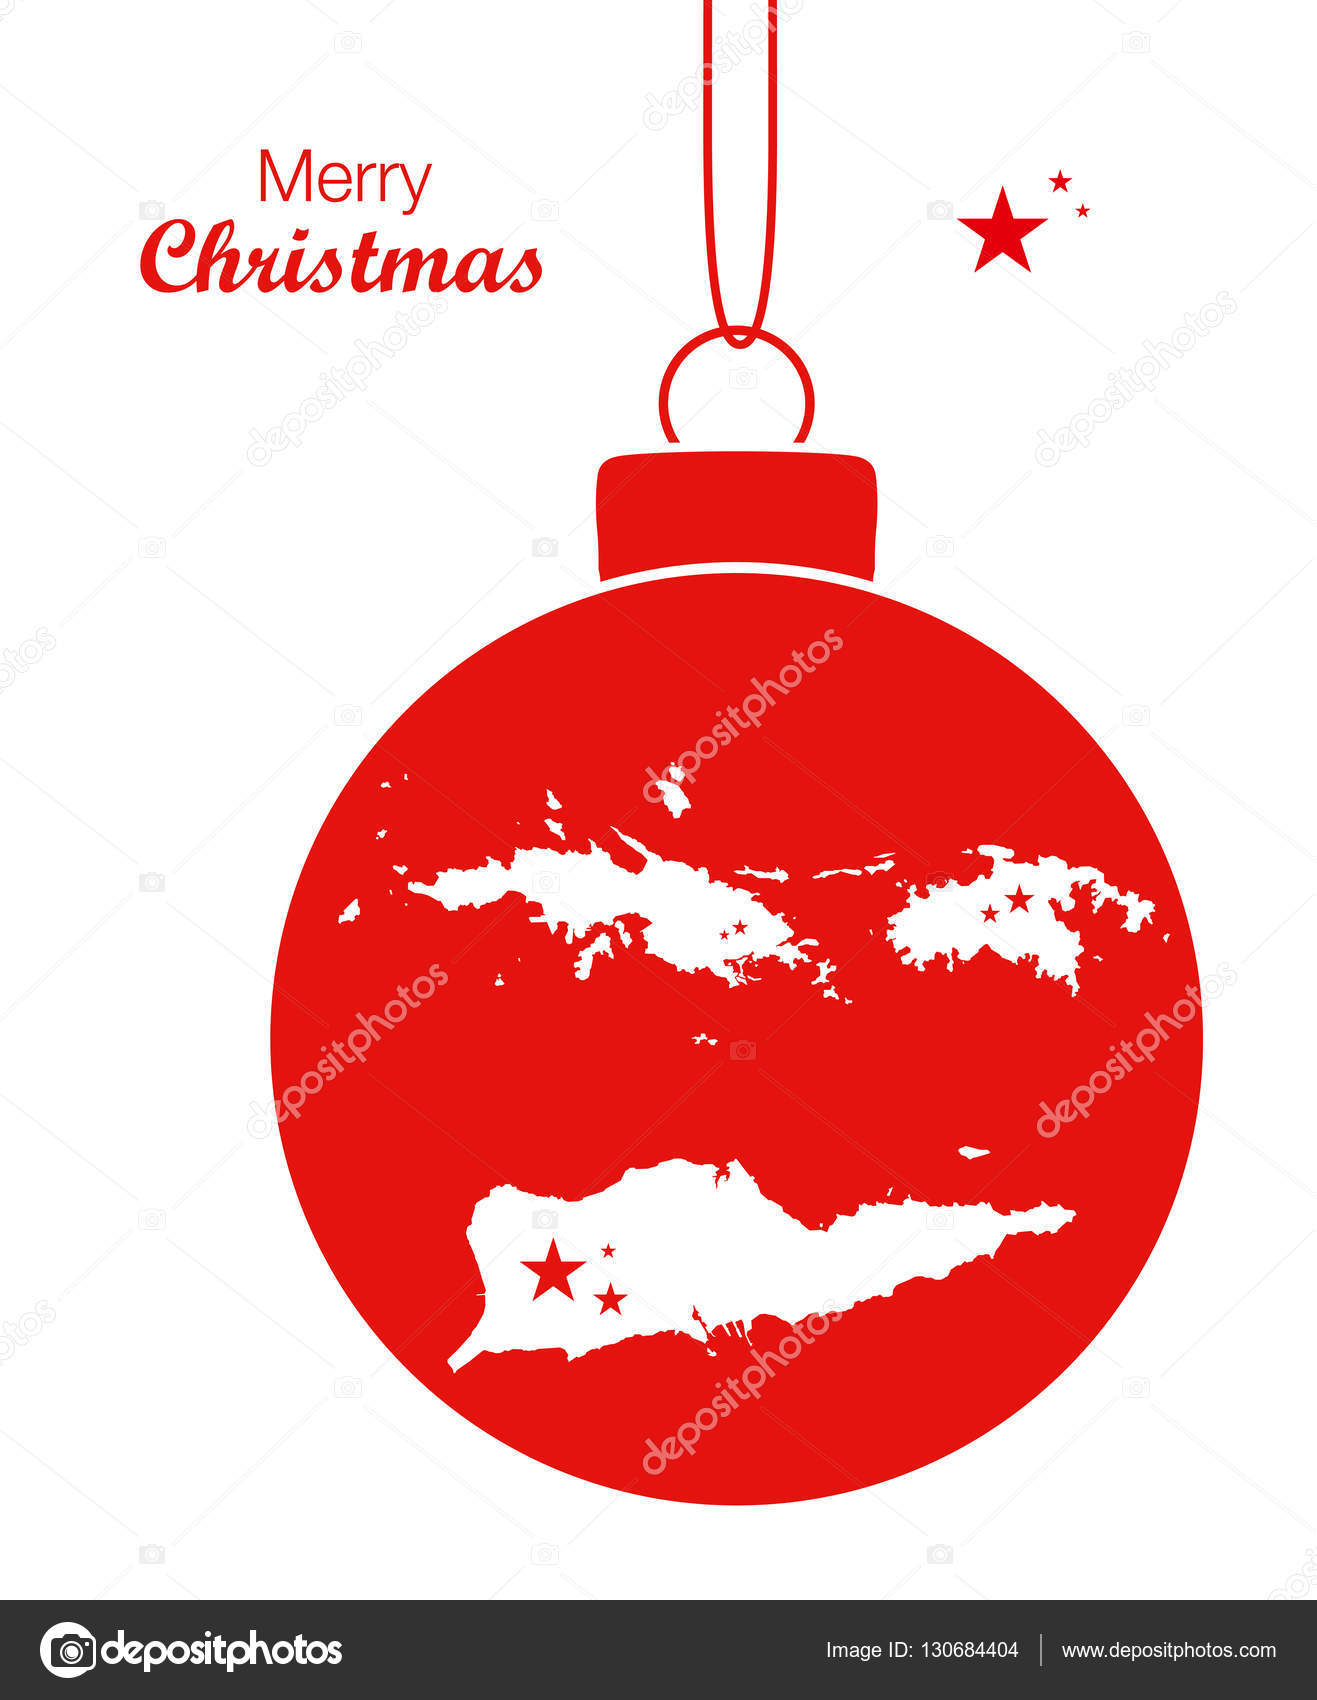 Merry Christmas illustration theme with map of US Virgin Islands ...